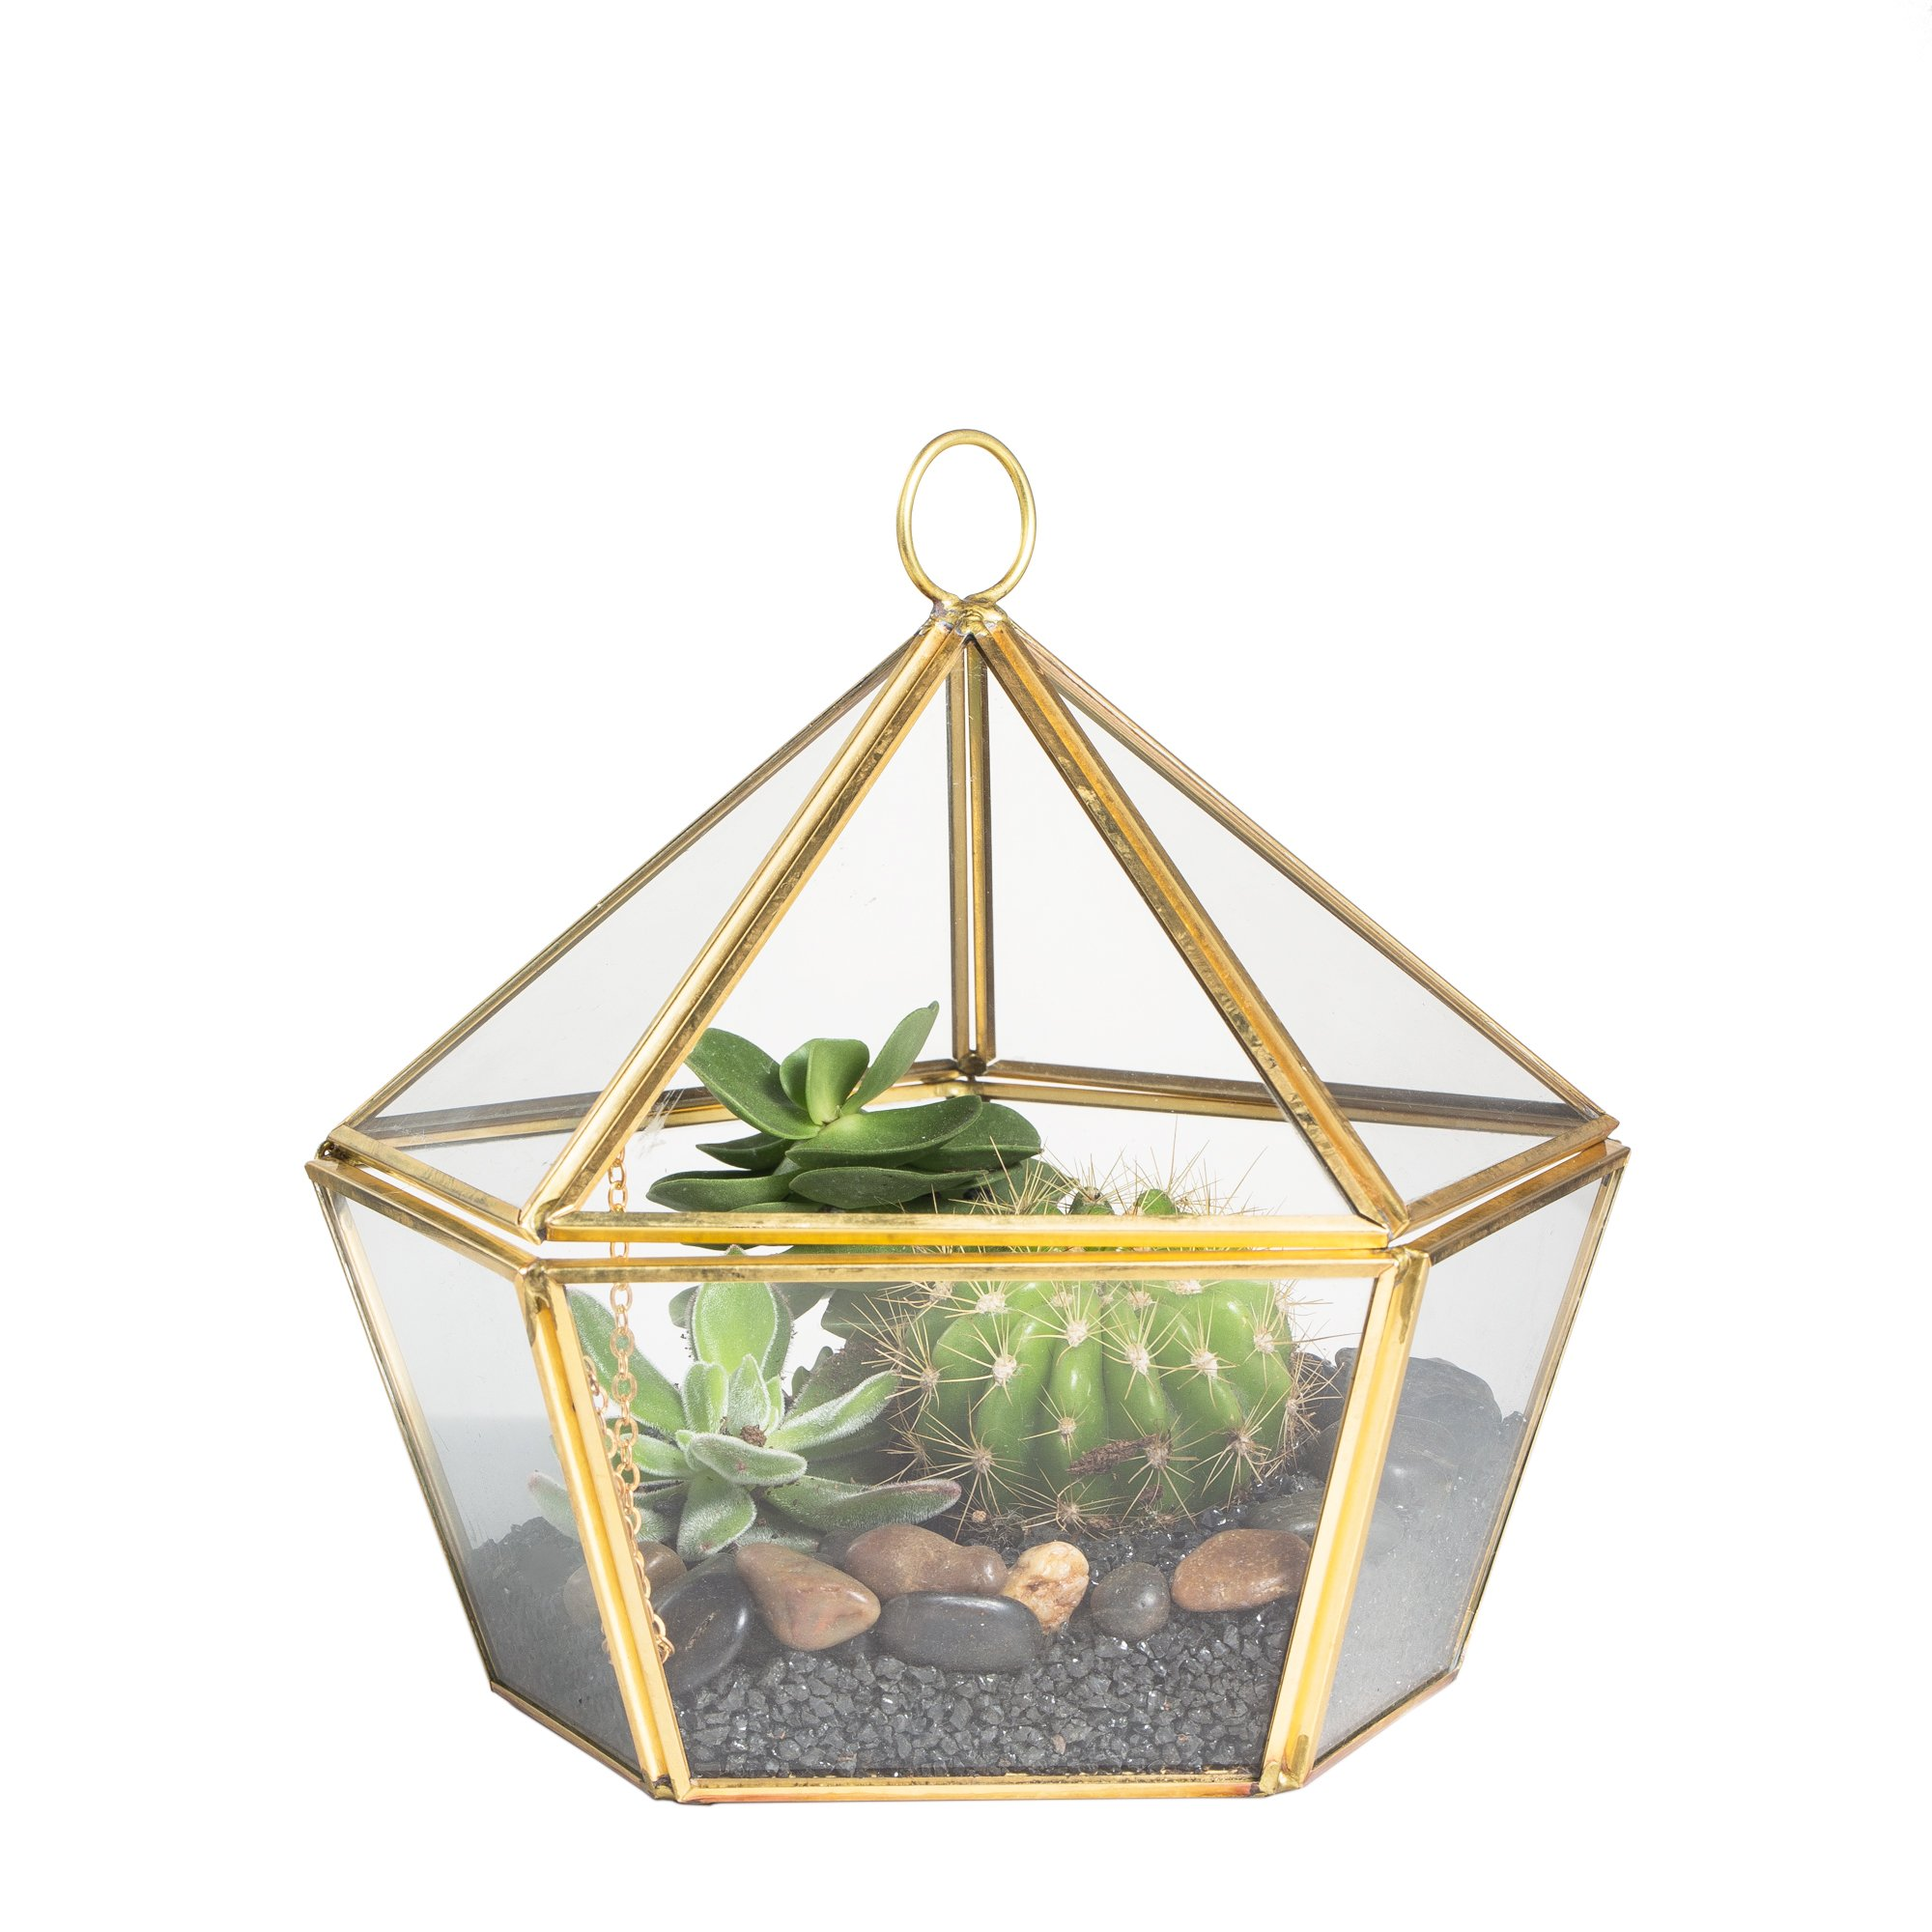 NCYP Modern Artistic Brass Copper Clear Glass Jewel-boxed Pentagon Shape Glass Geometric Terrarium Succulent Planter Closed Plant Container Moss Fern Geo Box with Swing Lid Gold